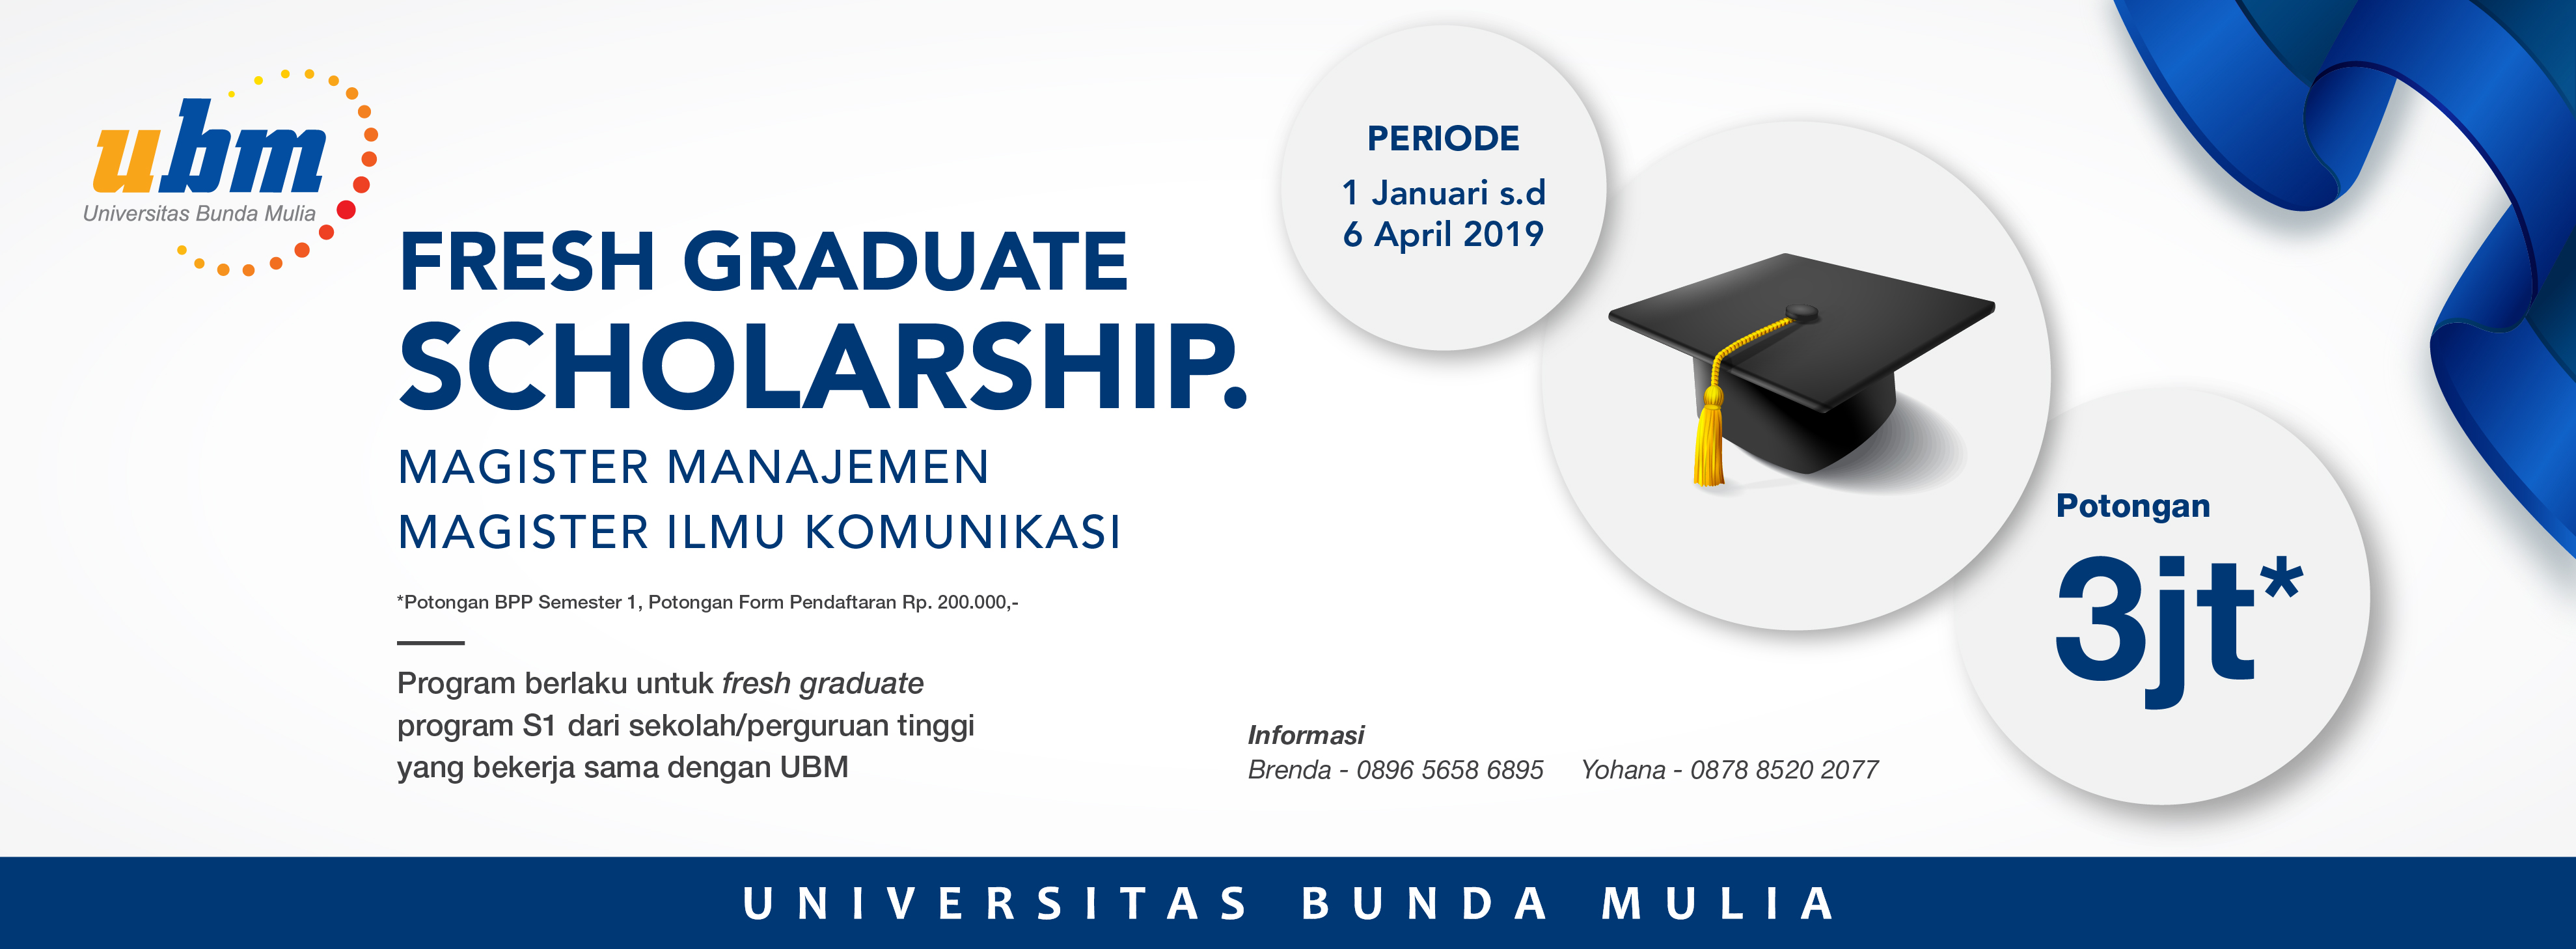 Web-Banner-Fresh-Graduated-Scholarship-01